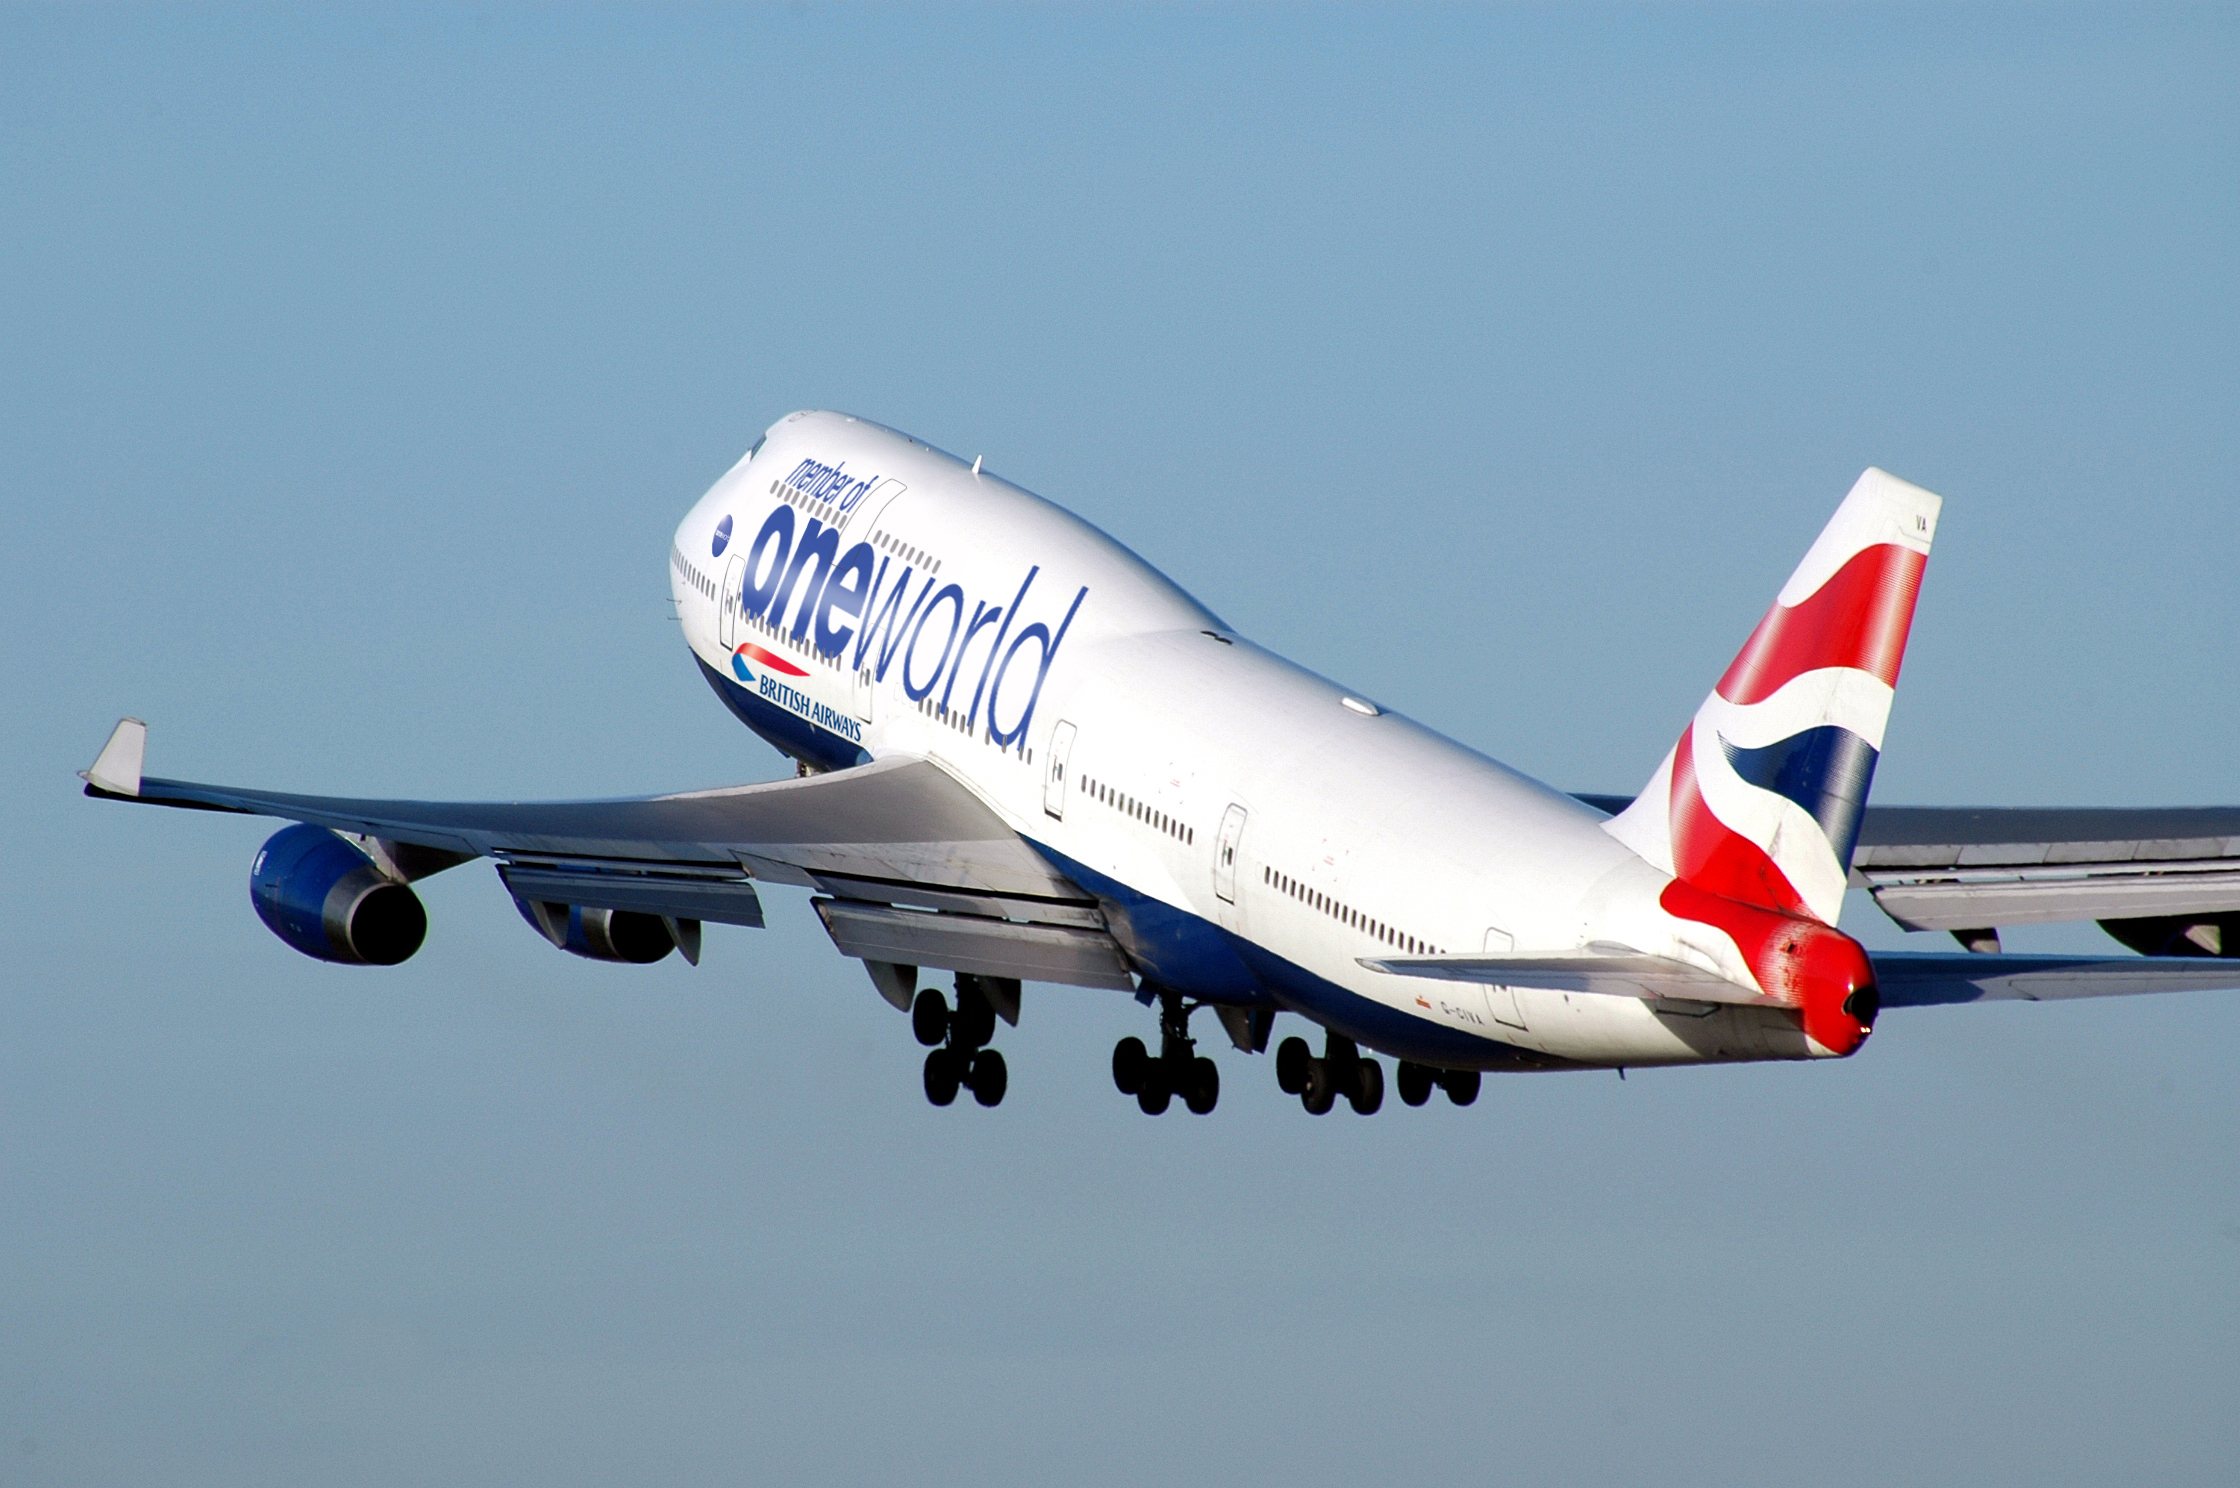 Aeroplans - British Airways aux couleurs de oneworld